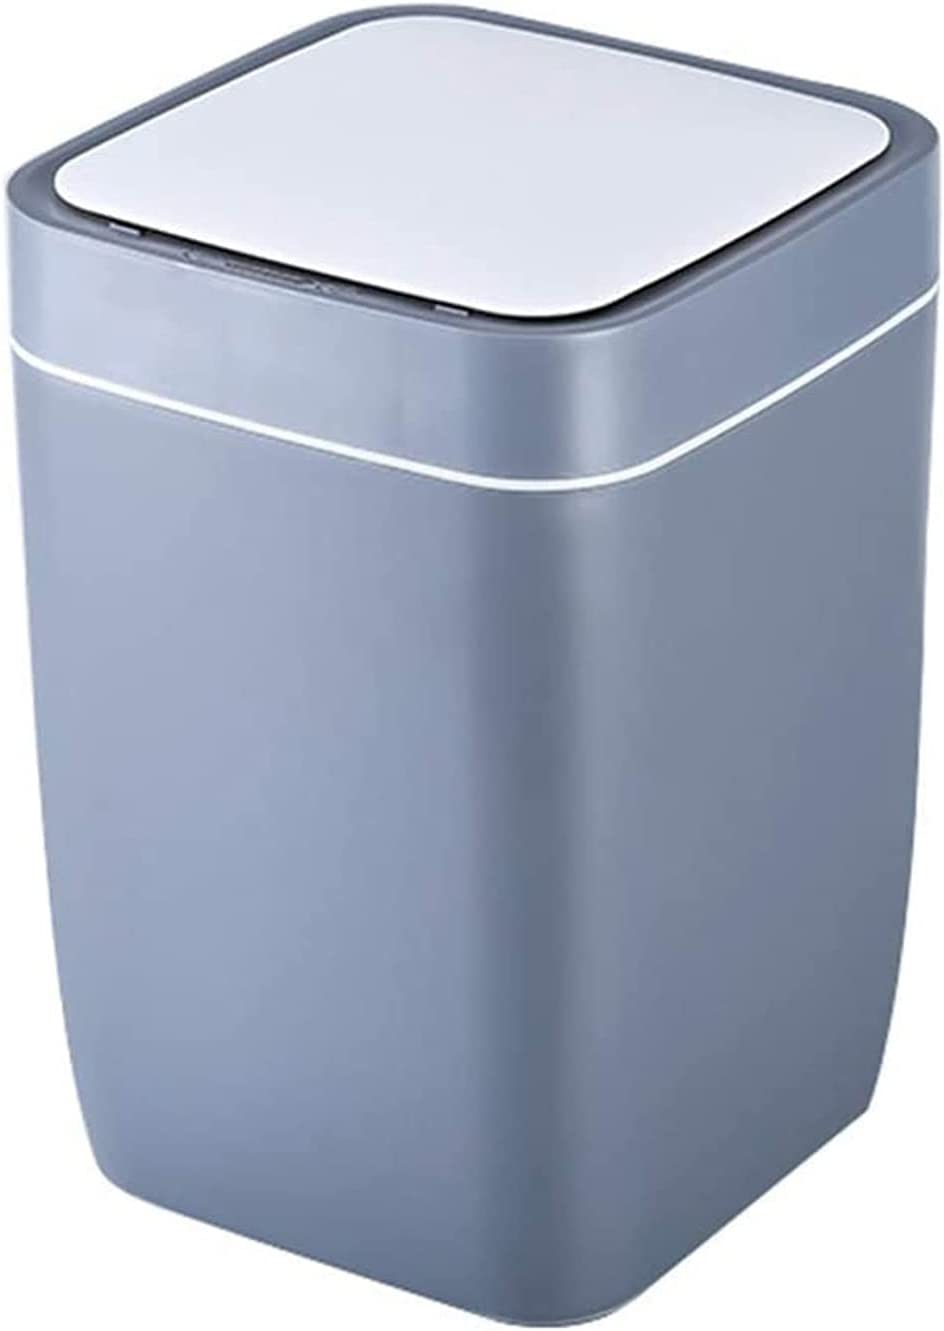 ZLQBHJ 8L Wide Opening Sensor Kitchen ABS Bin T Inventory ! Super beauty product restock quality top! cleanup selling sale Trash Automatic